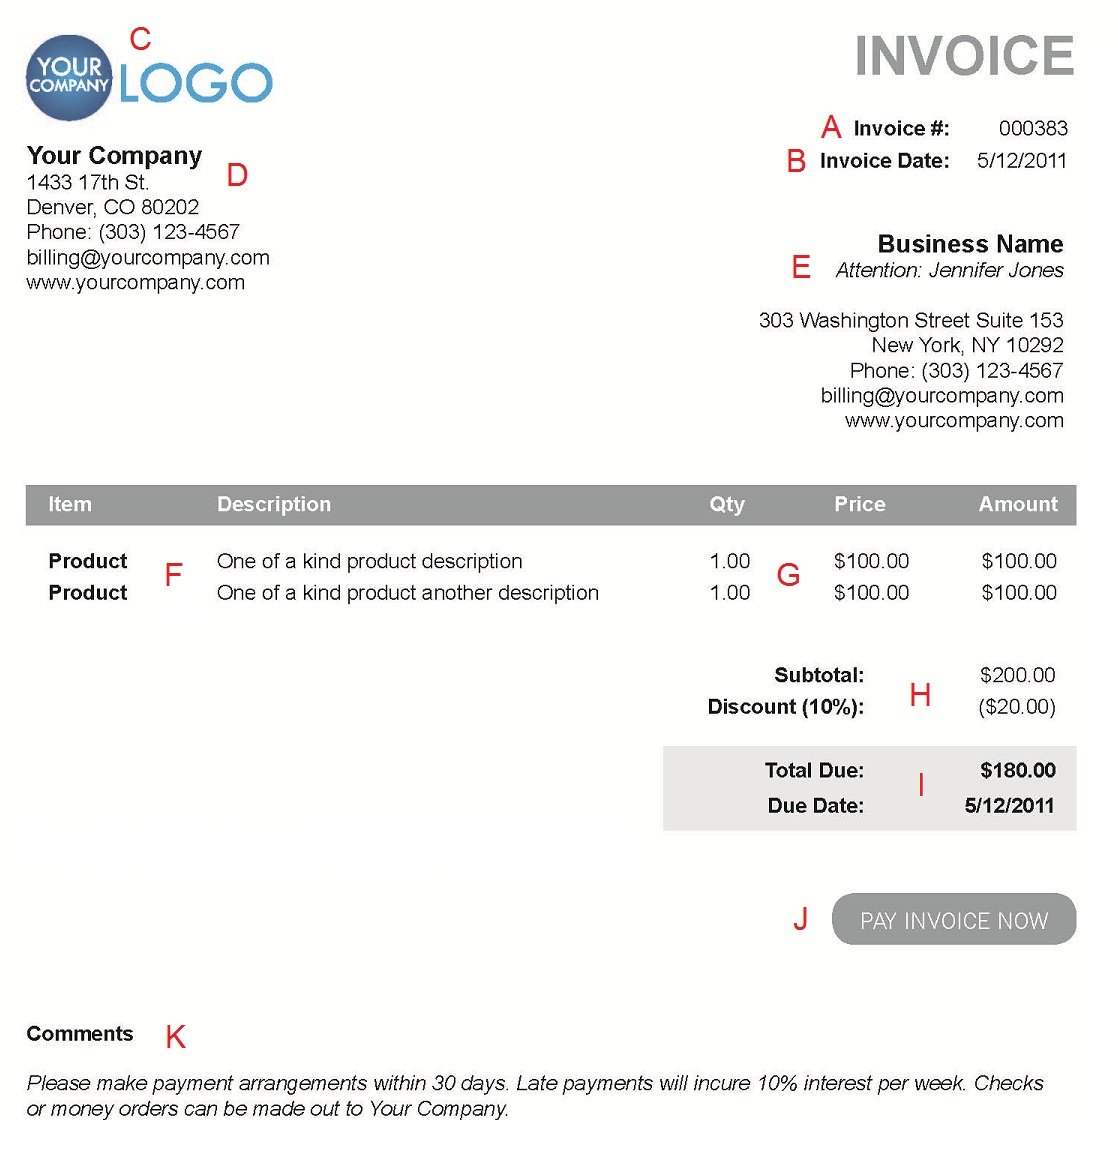 Angkajituus  Pleasing The  Different Sections Of An Electronic Payment Invoice With Engaging A  With Divine Westpac Invoice Finance Login Also Invoice Term And Condition In Addition Pro Foma Invoice And Tax Invoices Template As Well As Invoice Processing Costs Additionally Carbonless Invoice Printing From Paysimplecom With Angkajituus  Engaging The  Different Sections Of An Electronic Payment Invoice With Divine A  And Pleasing Westpac Invoice Finance Login Also Invoice Term And Condition In Addition Pro Foma Invoice From Paysimplecom